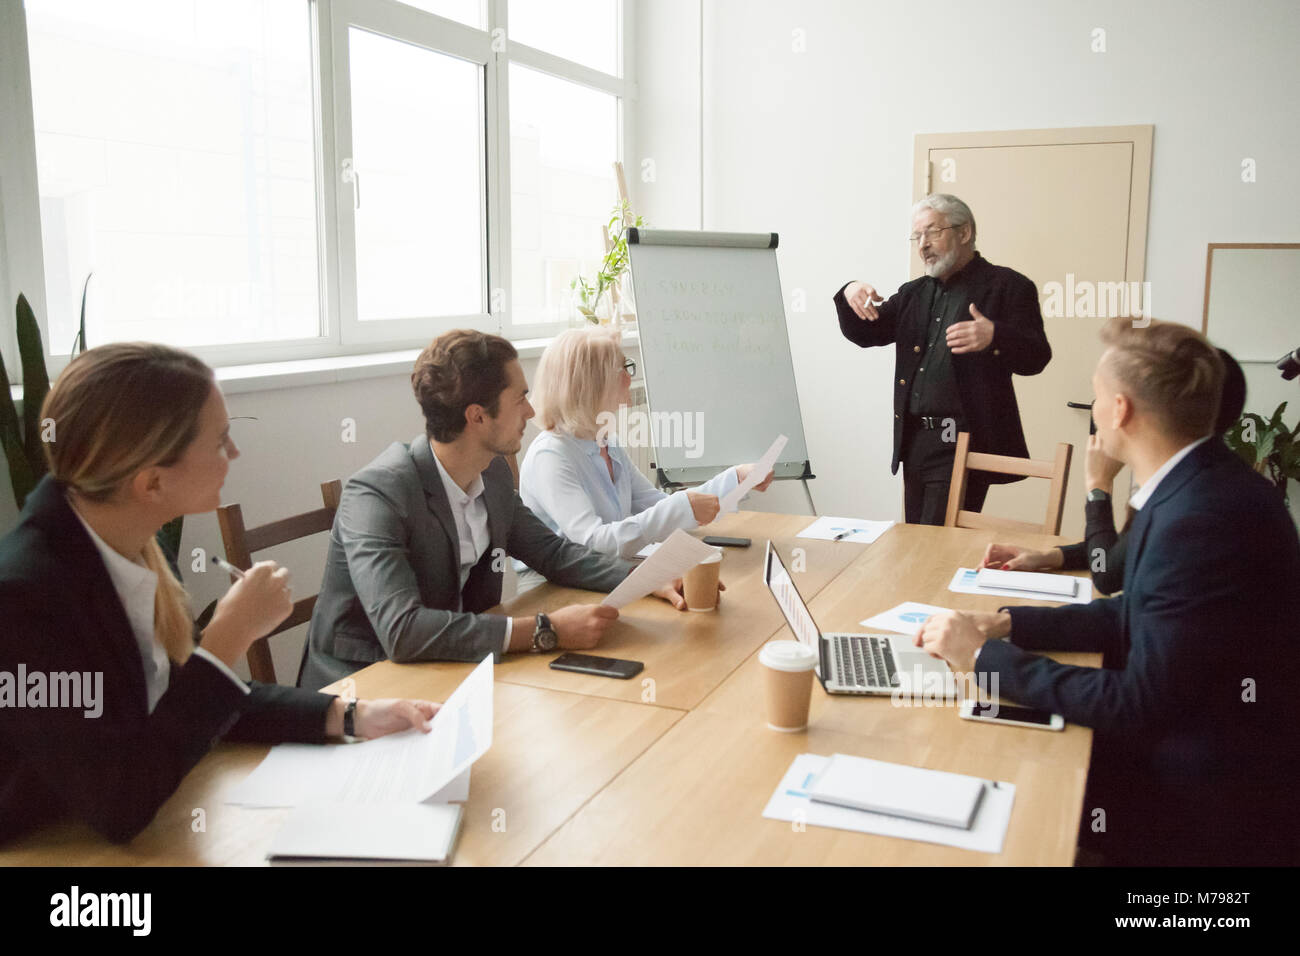 Senior coach giving presentation to executive managers team in b - Stock Image